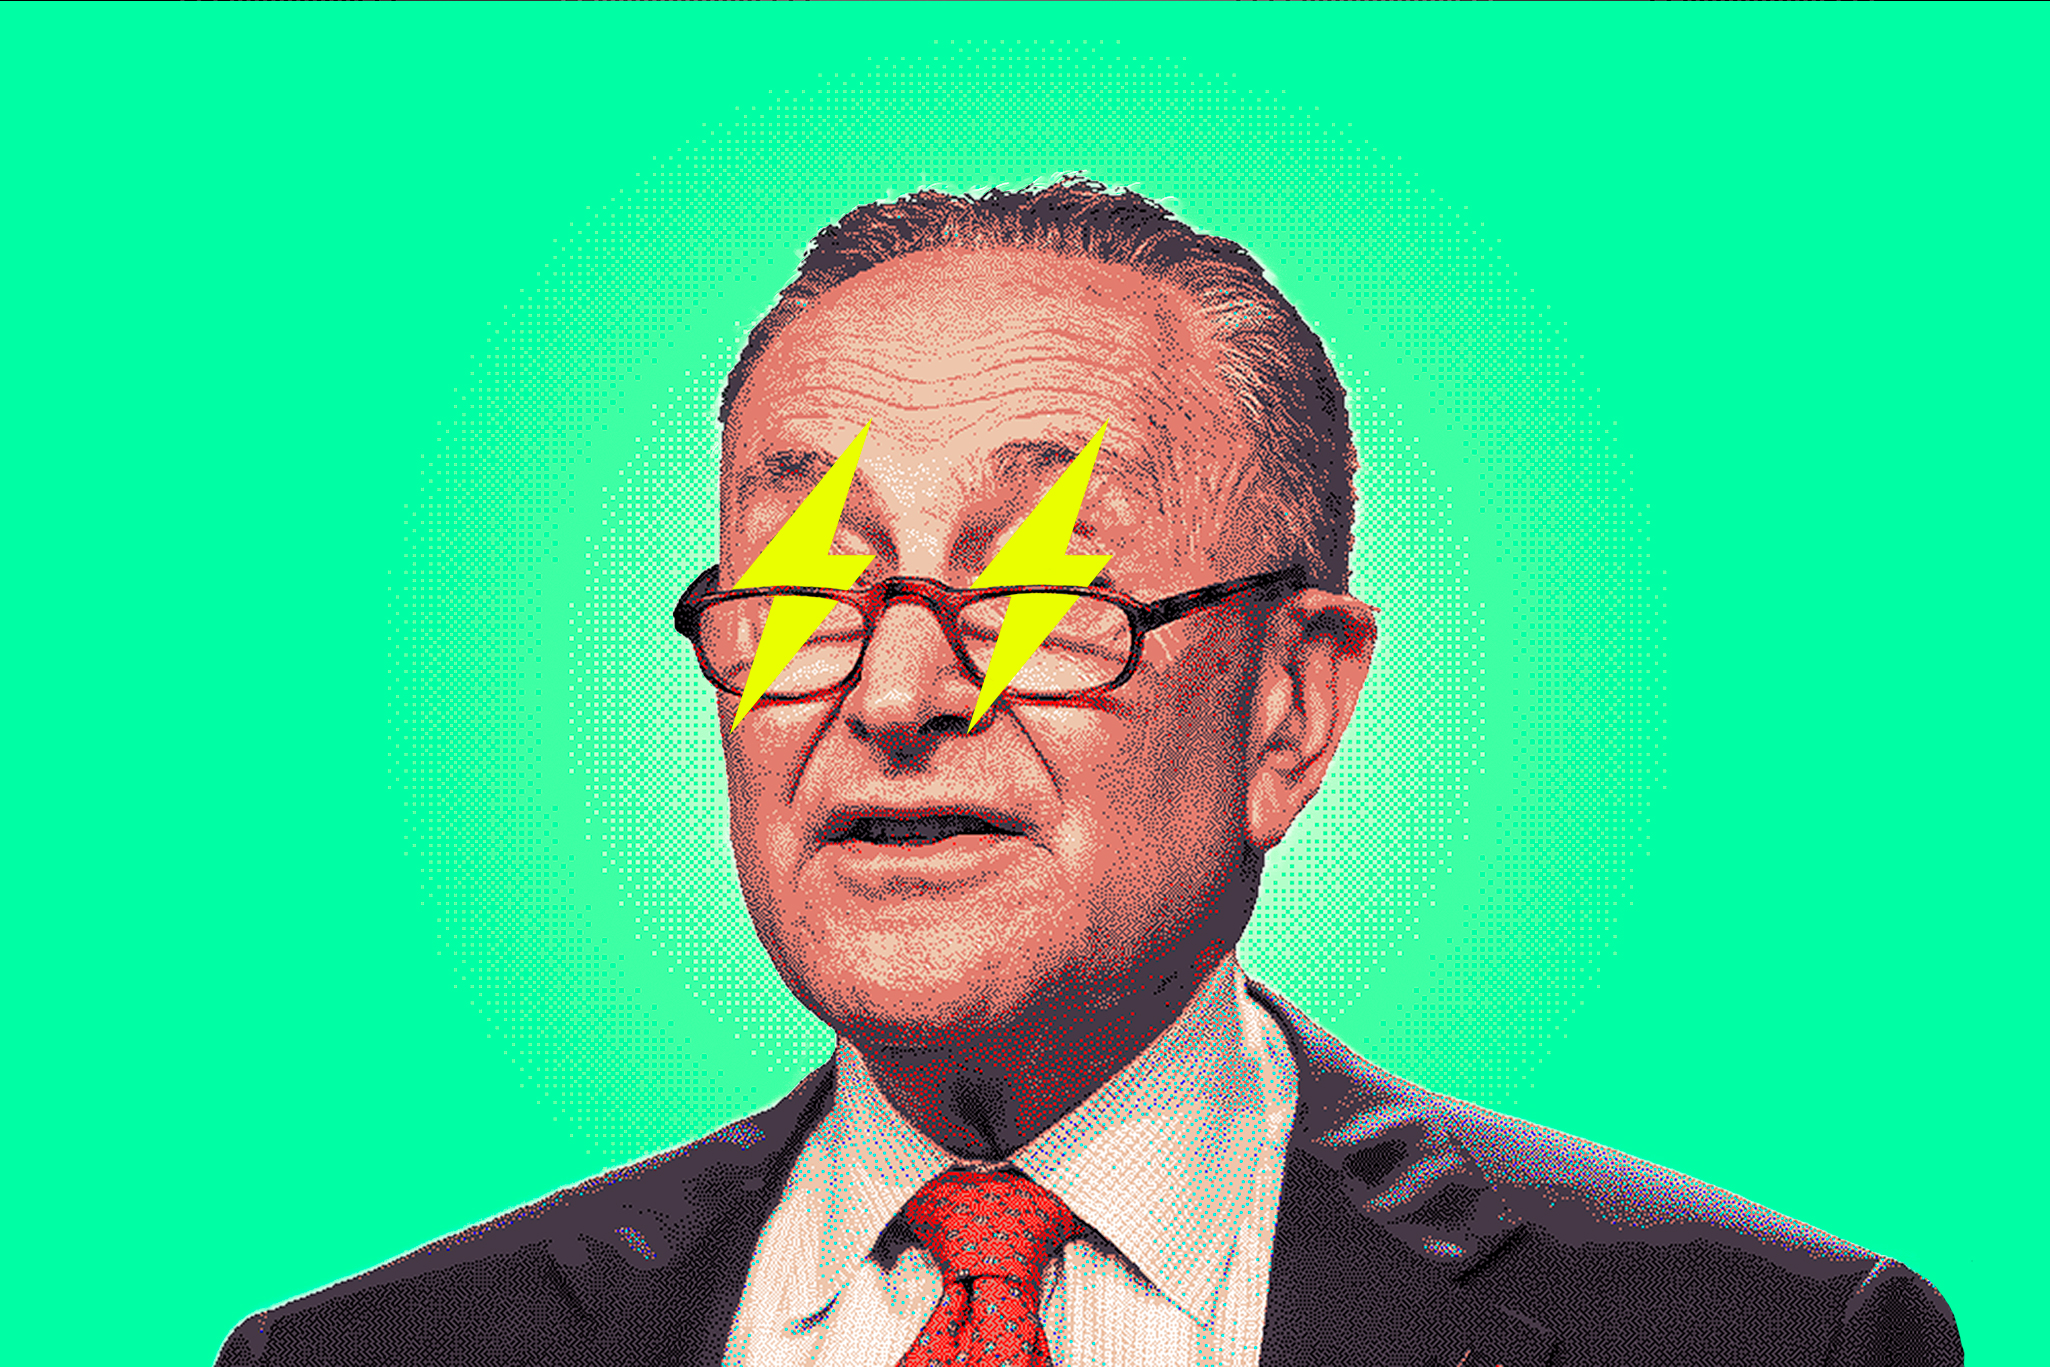 A photo illustration of Chuck Schumer with yellow lightning bolts covering his eyes.